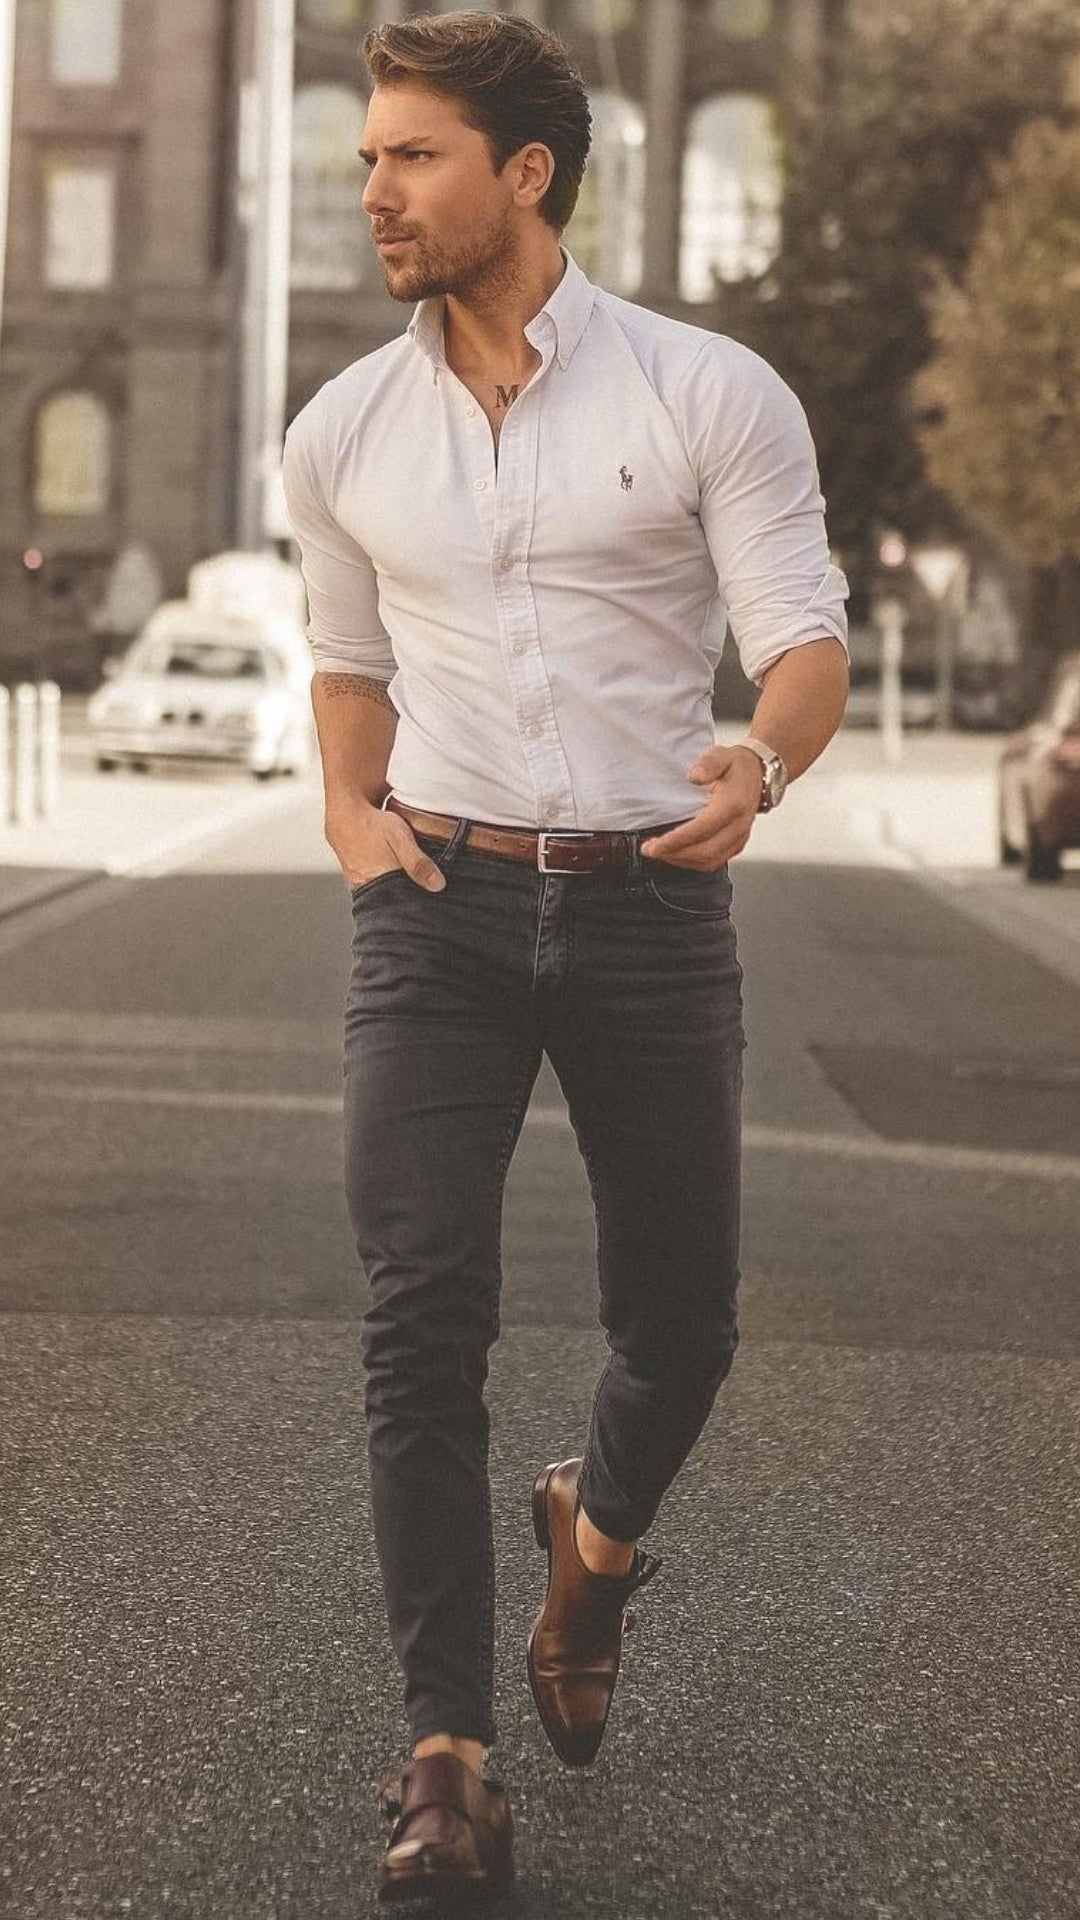 5 Outfits To Looking Great In Shirts #shirt #outfits #mensfashion #streetstyle